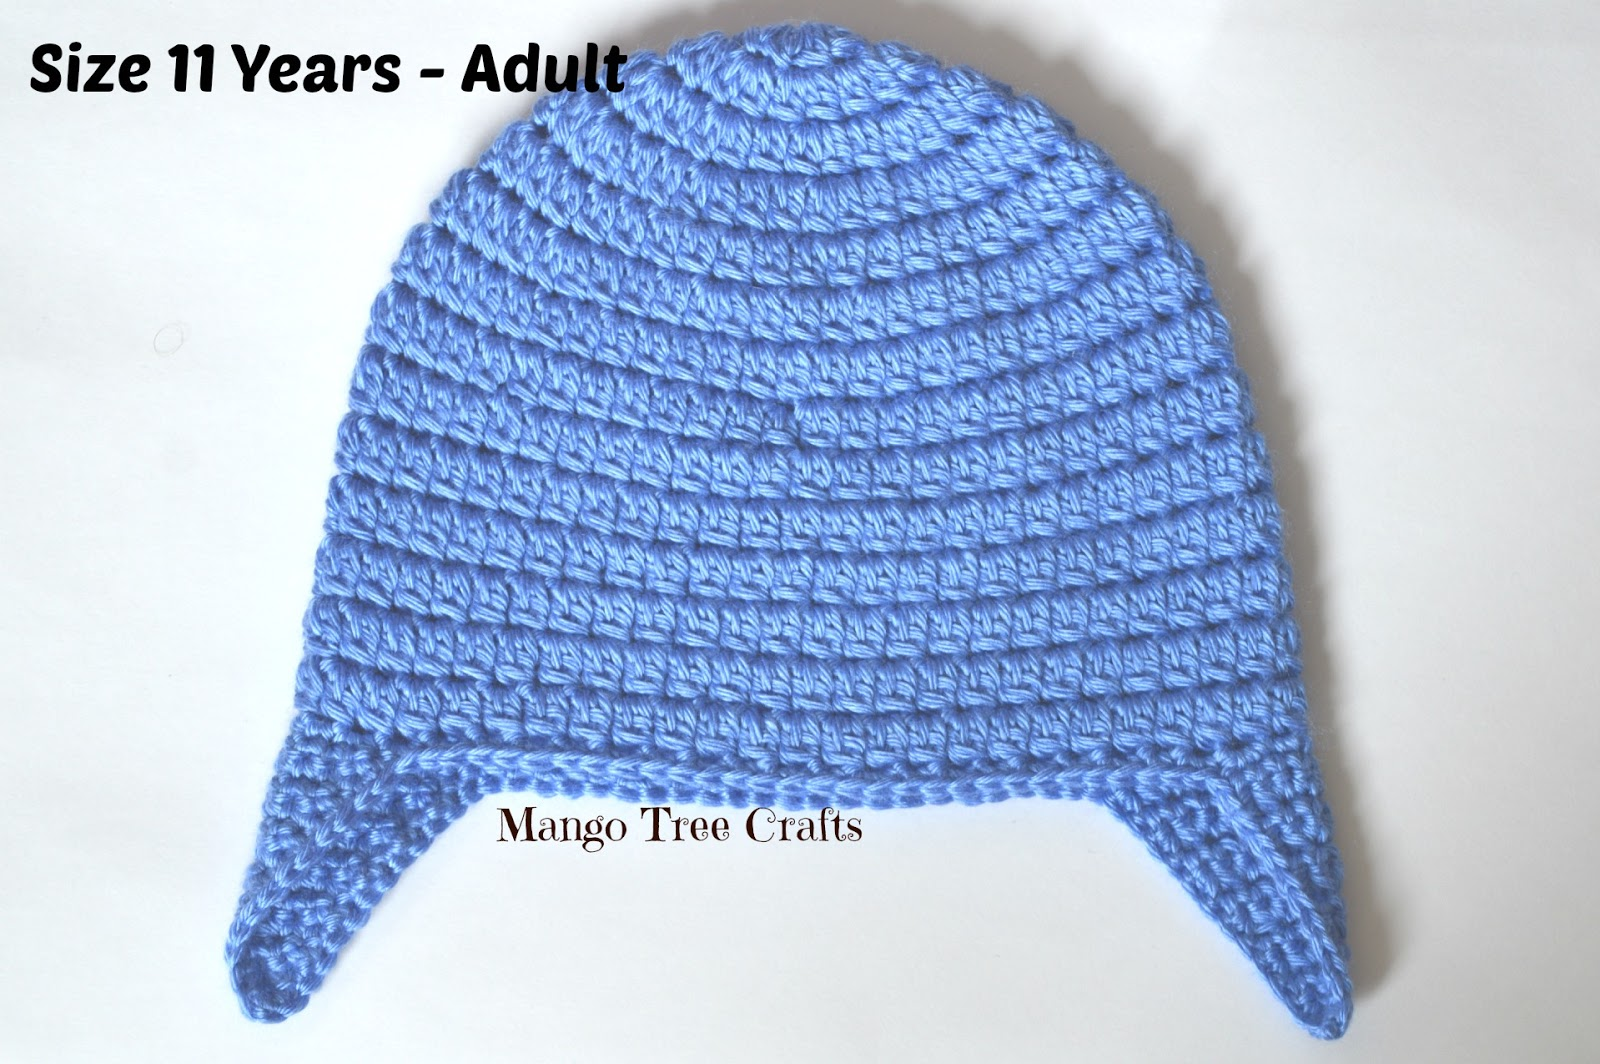 Basic Crochet Ear Flap Hat Pattern In 7 Sizes